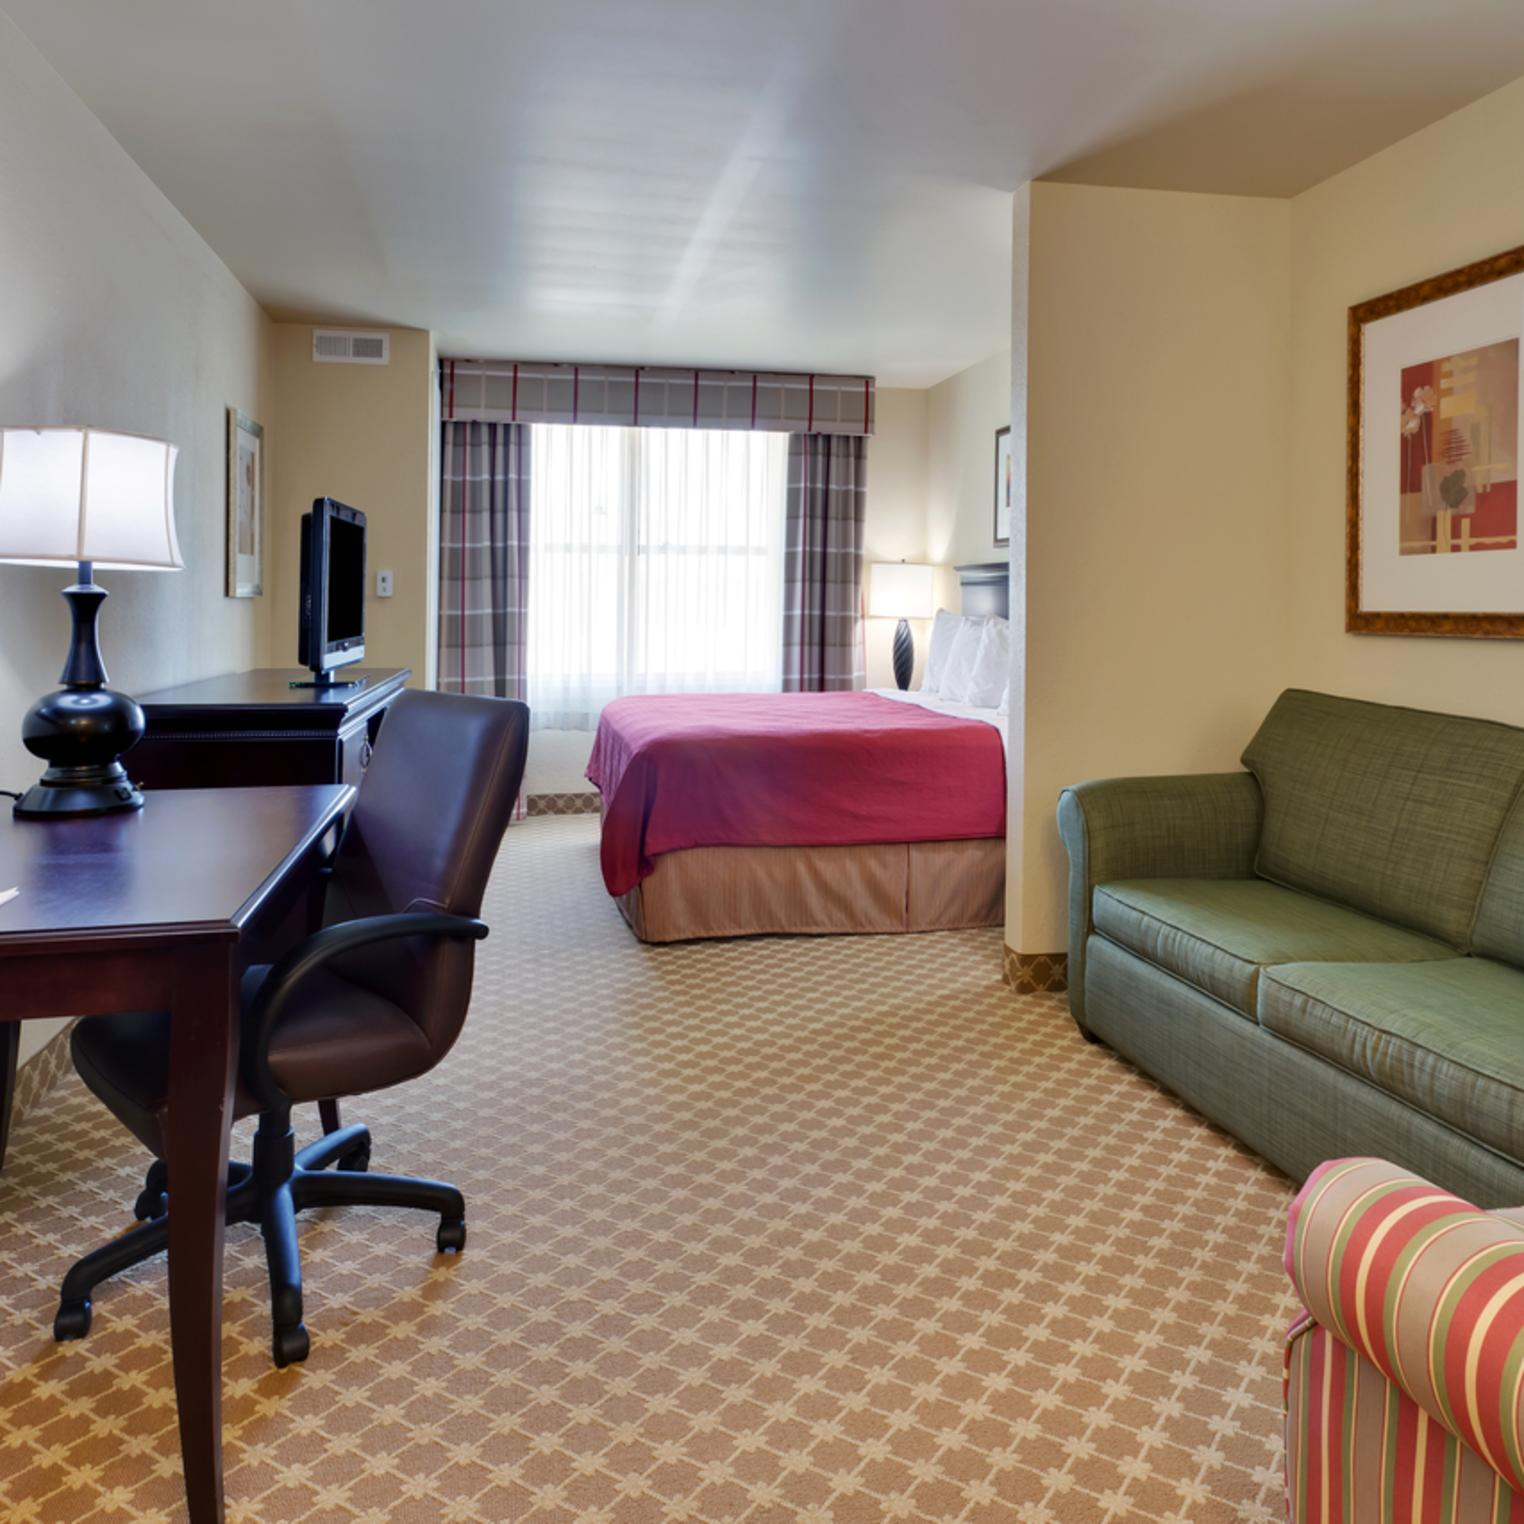 Country Inn and Suites King Studio